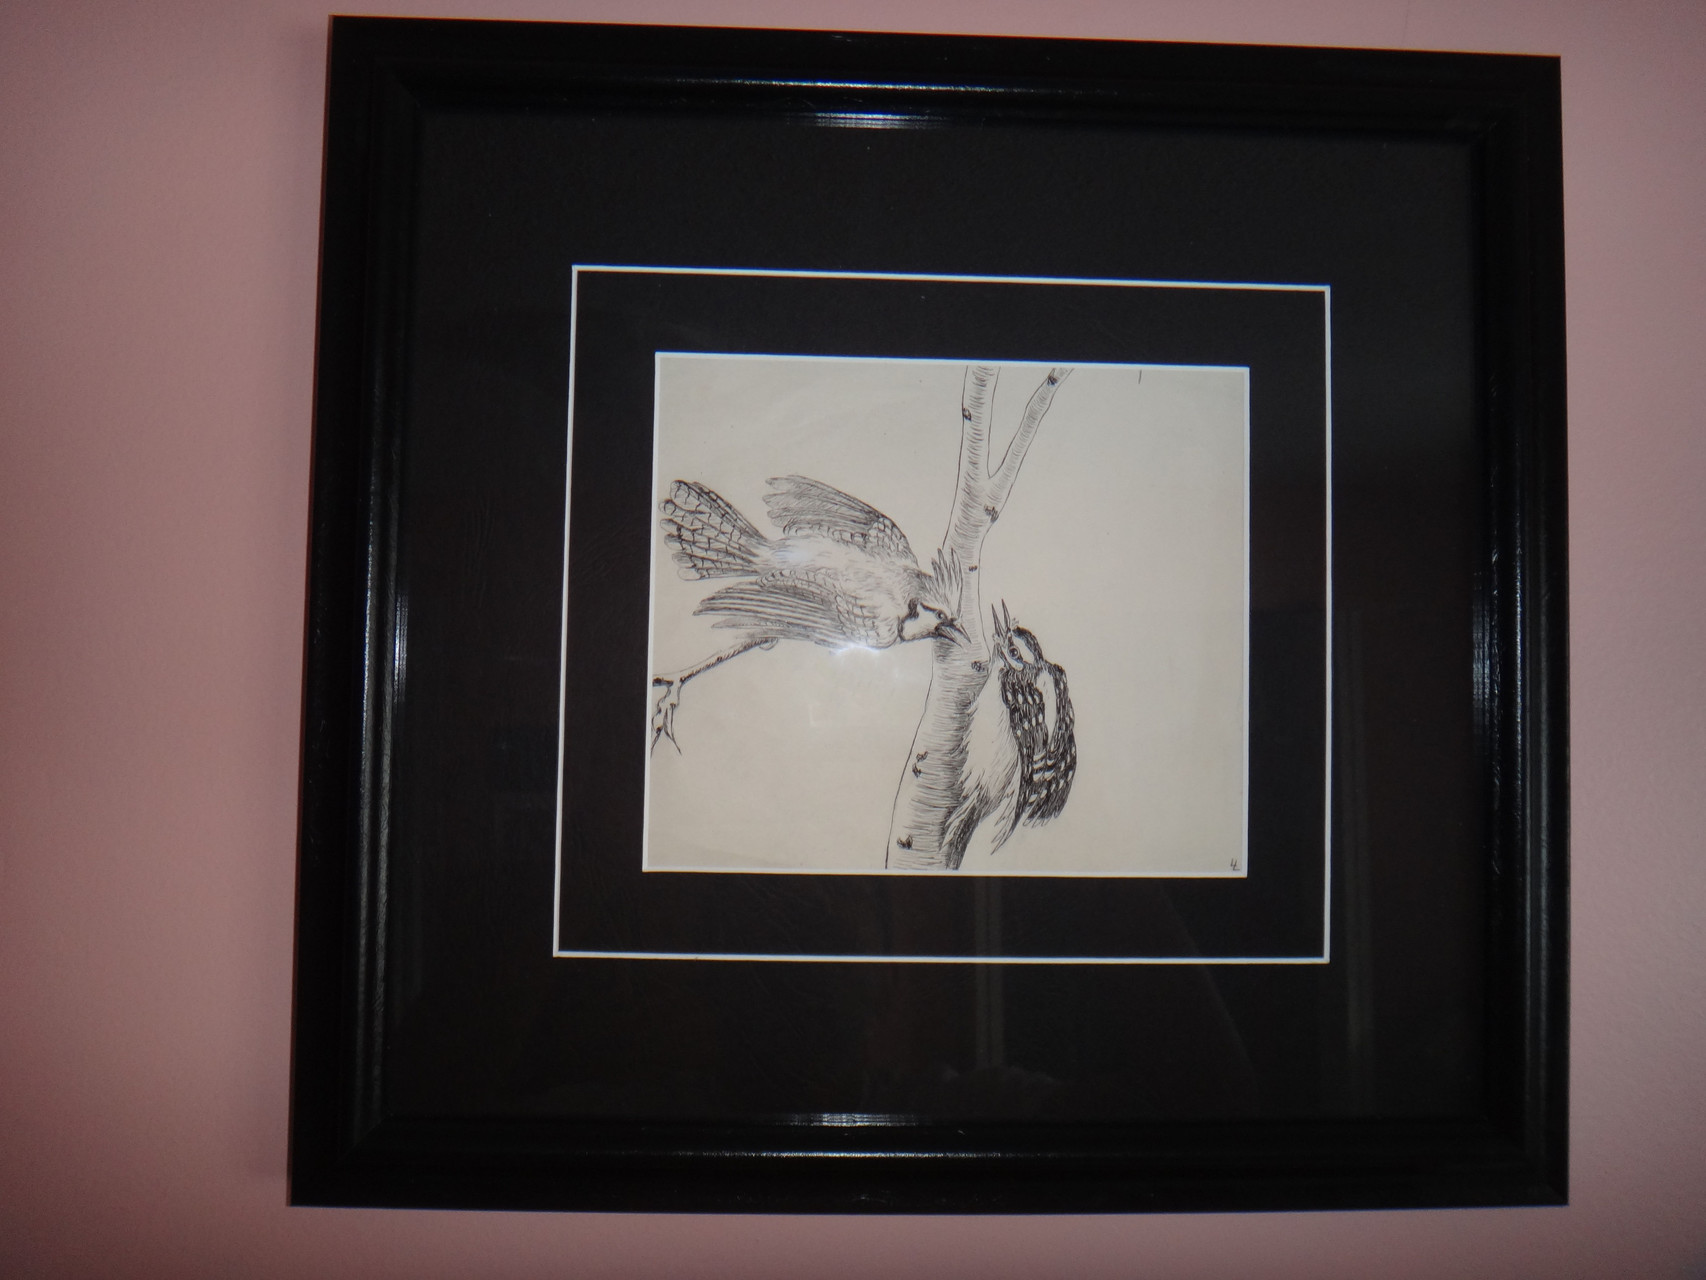 Framed original sketch by Louise de Kiriline Lawrence